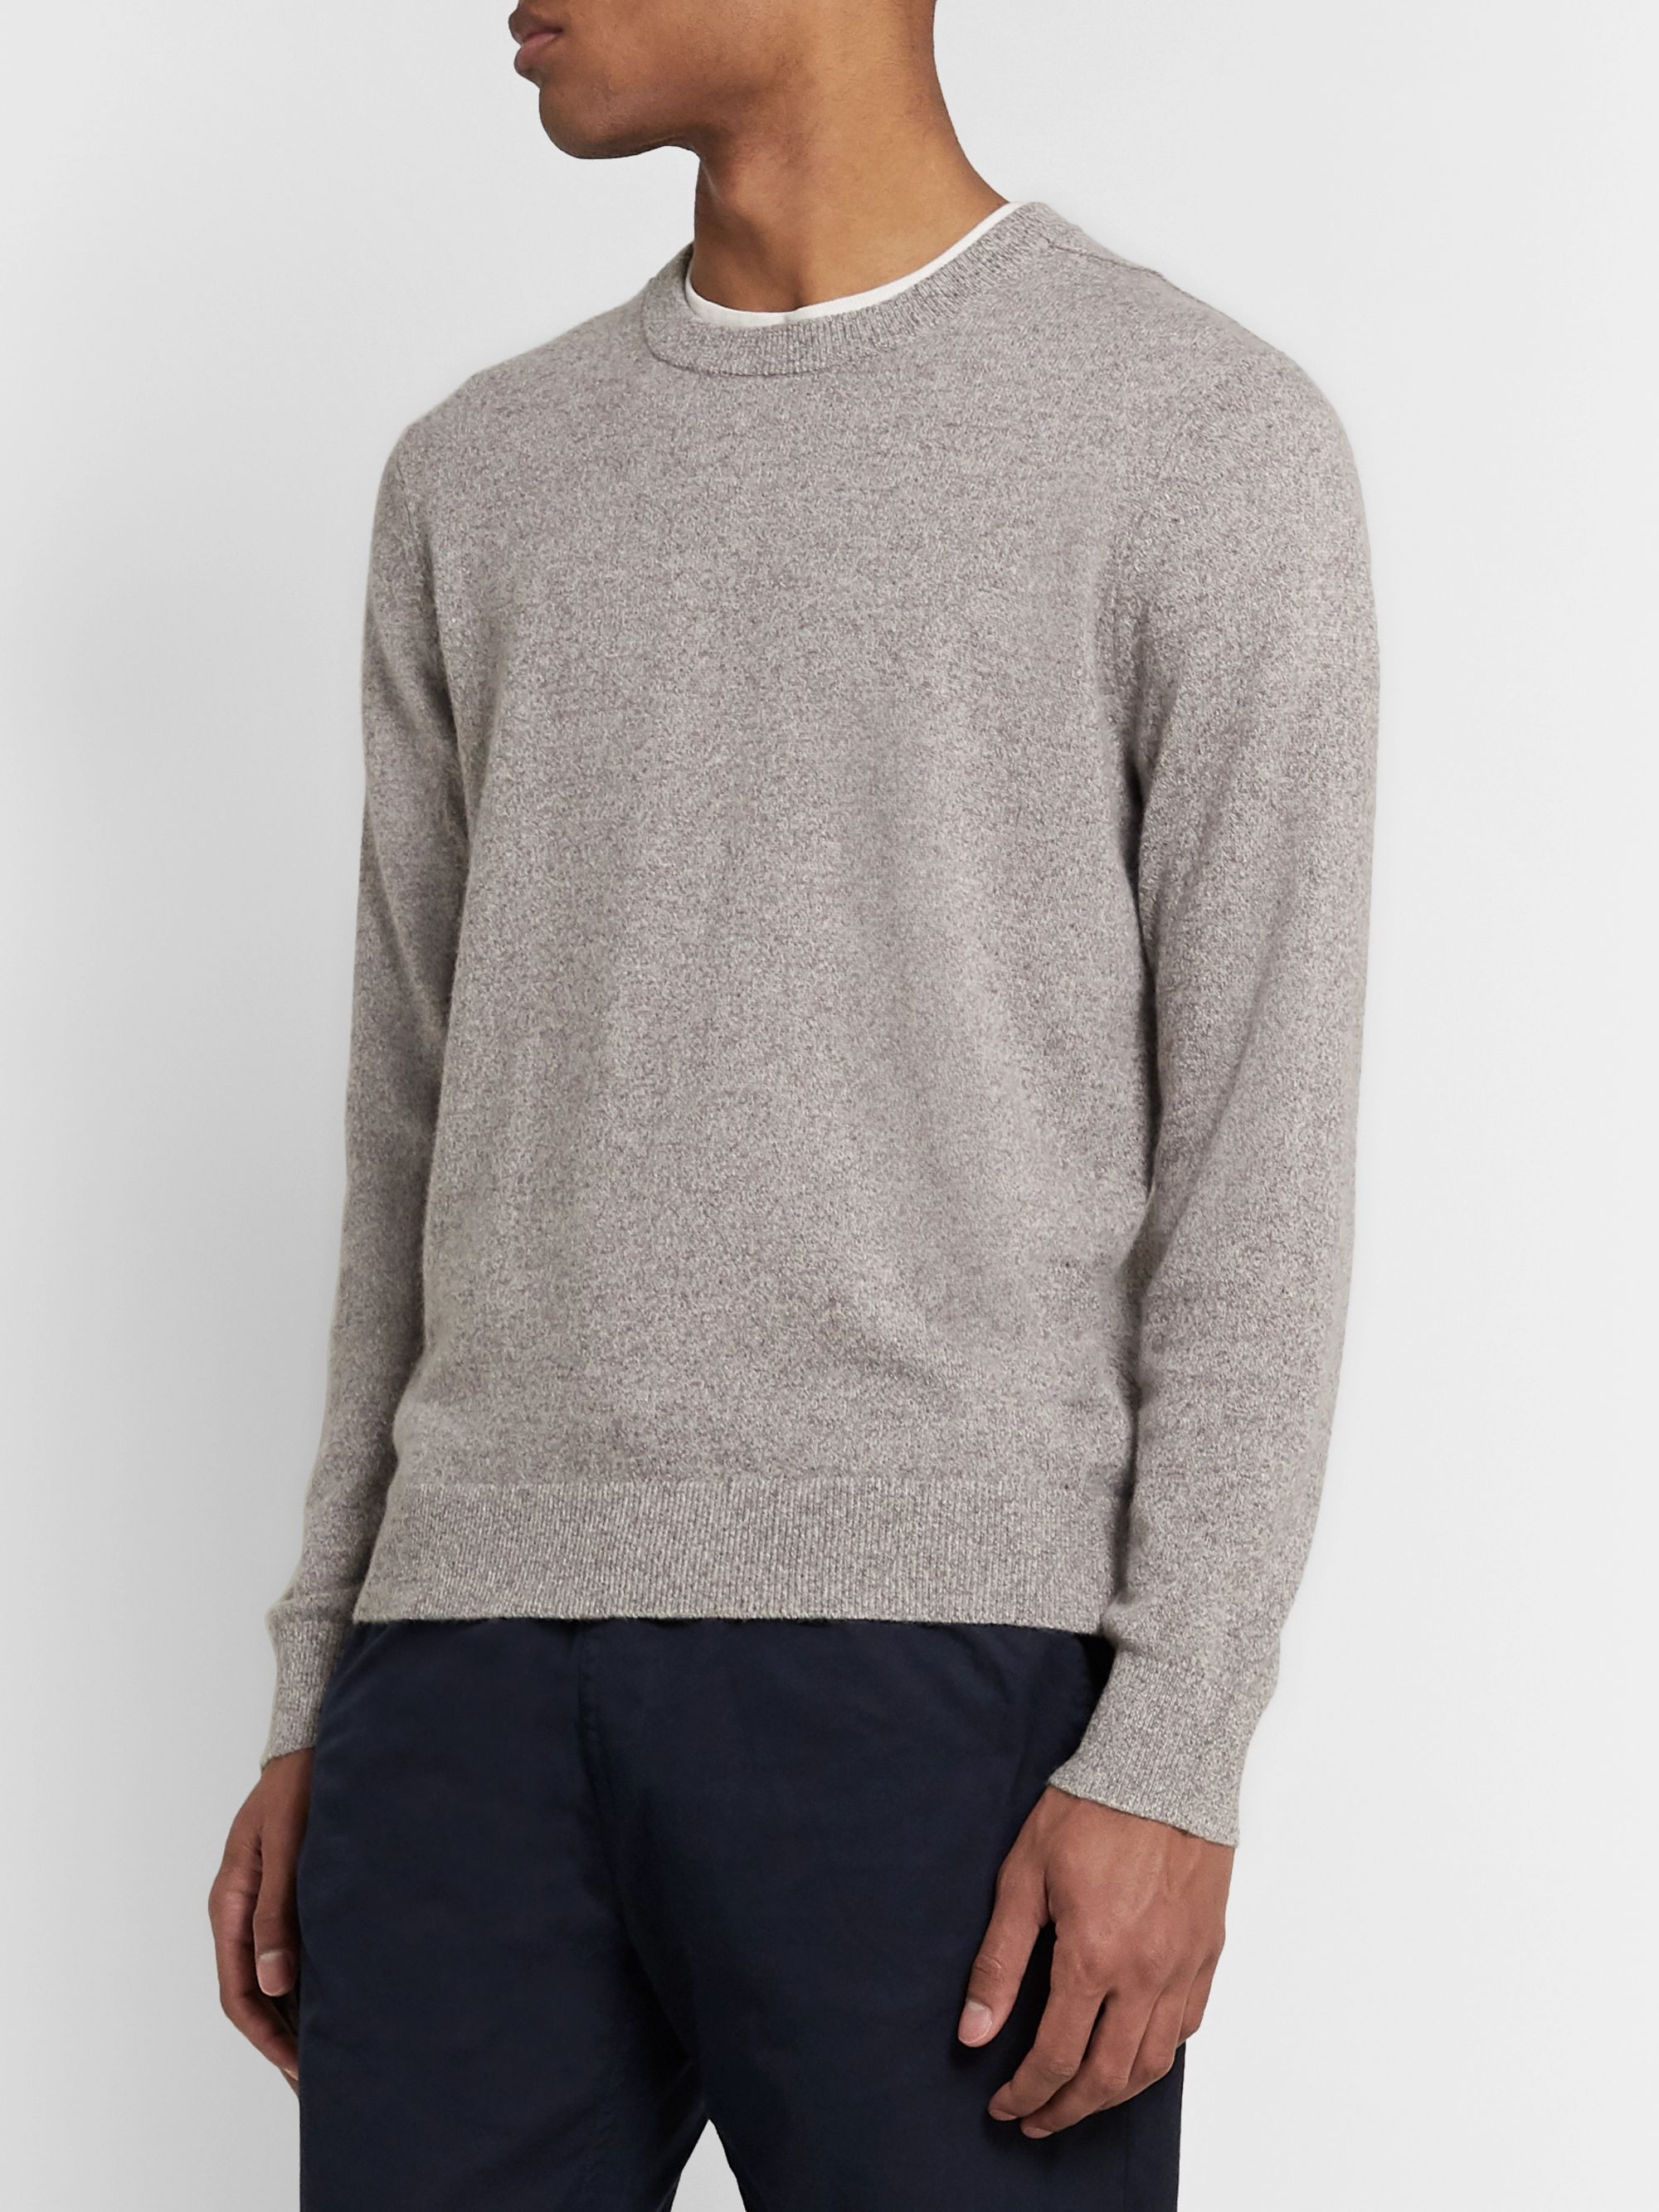 Club Monaco Mélange Cashmere Sweater